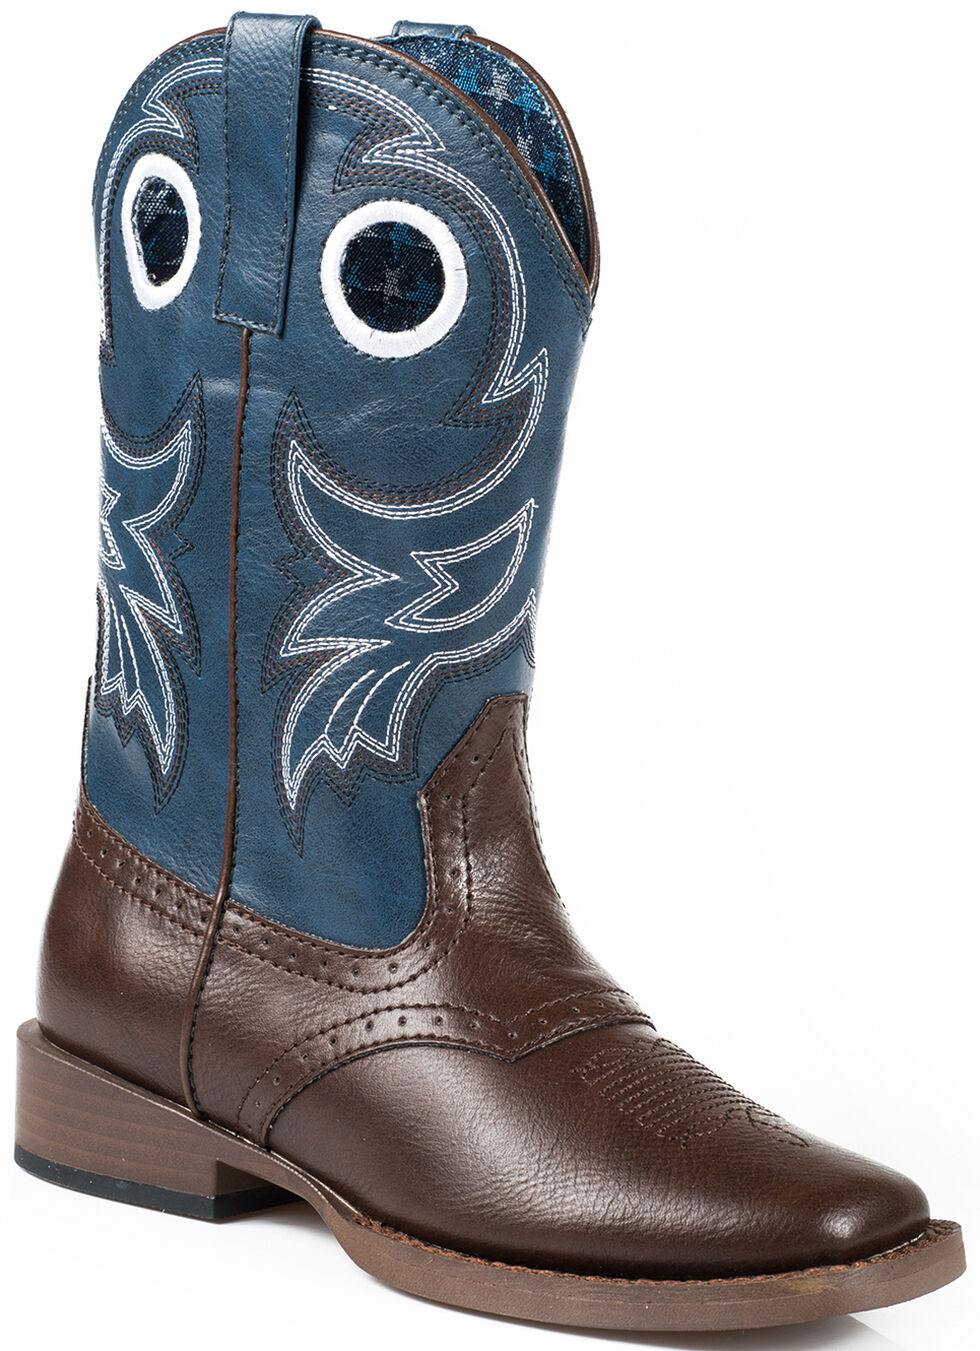 Roper Boys' Blue and Brown Faux Leather Cowboy Boots - Square Toe , Brown, hi-res